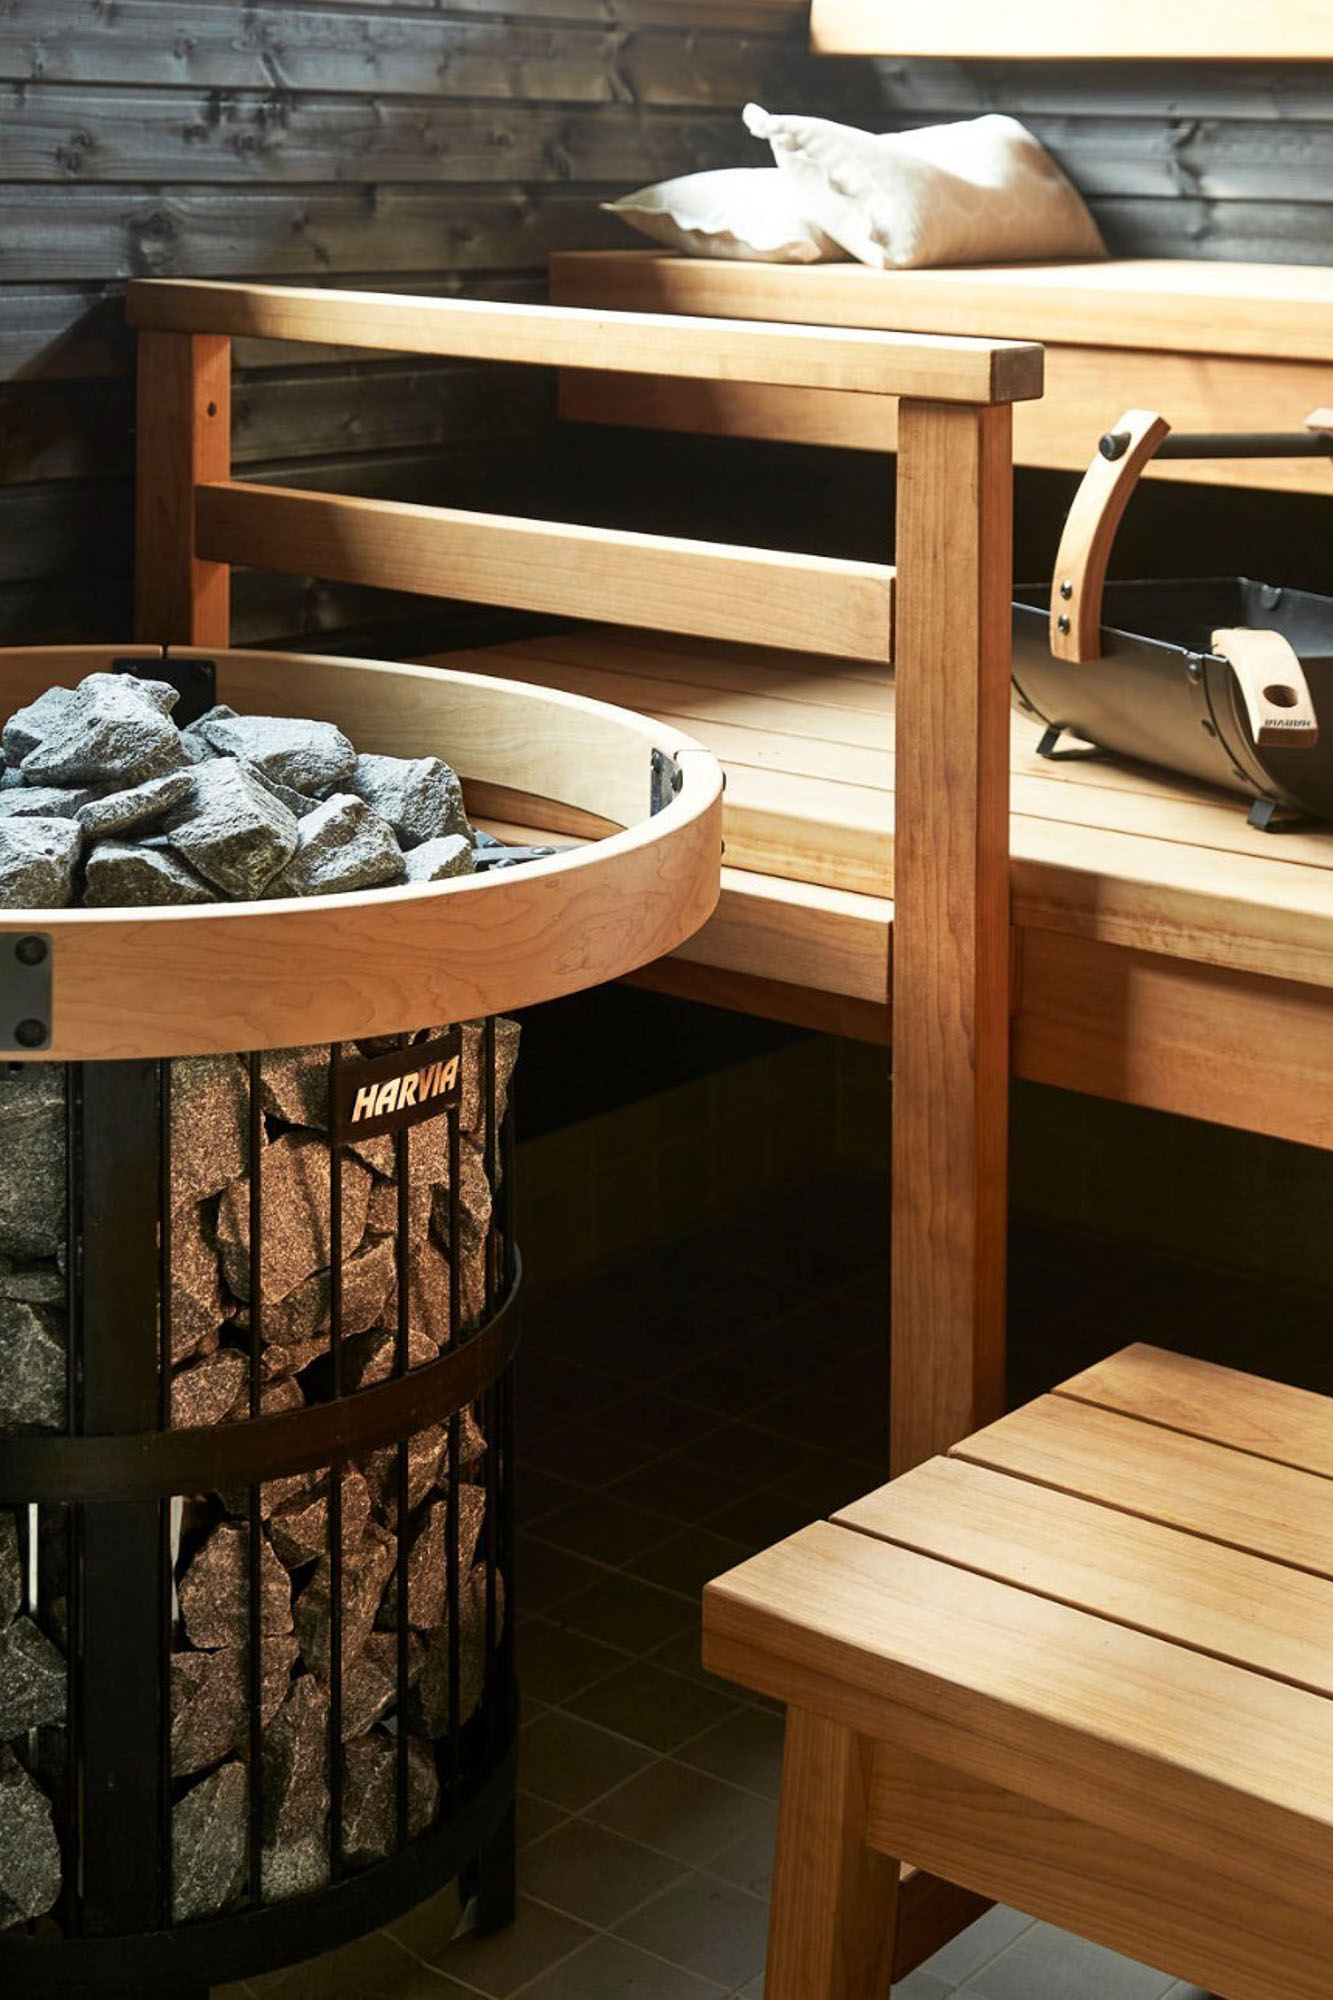 off-grid wood fired nomad cabin sauna with harvia heater and wooden benches